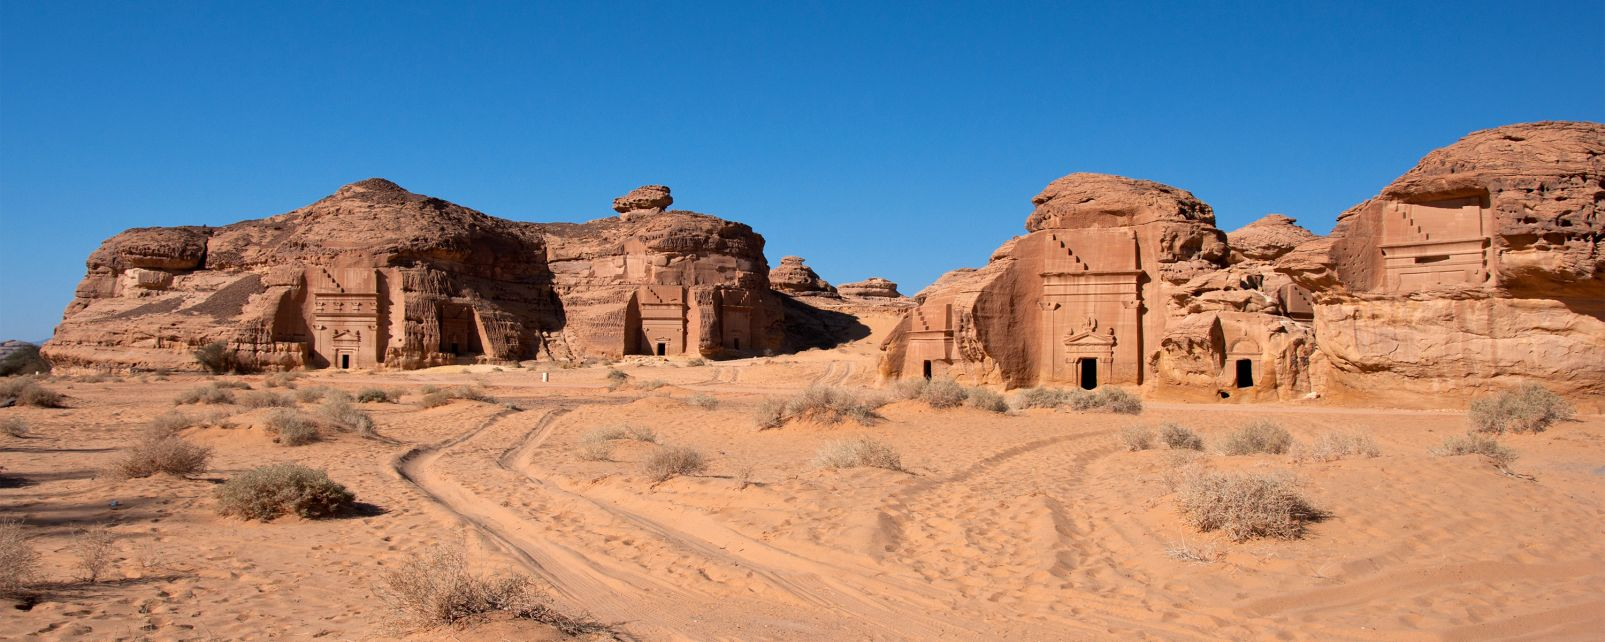 The Nabatean tombs of Madahine-Saleh, Monuments, Saudi Arabia